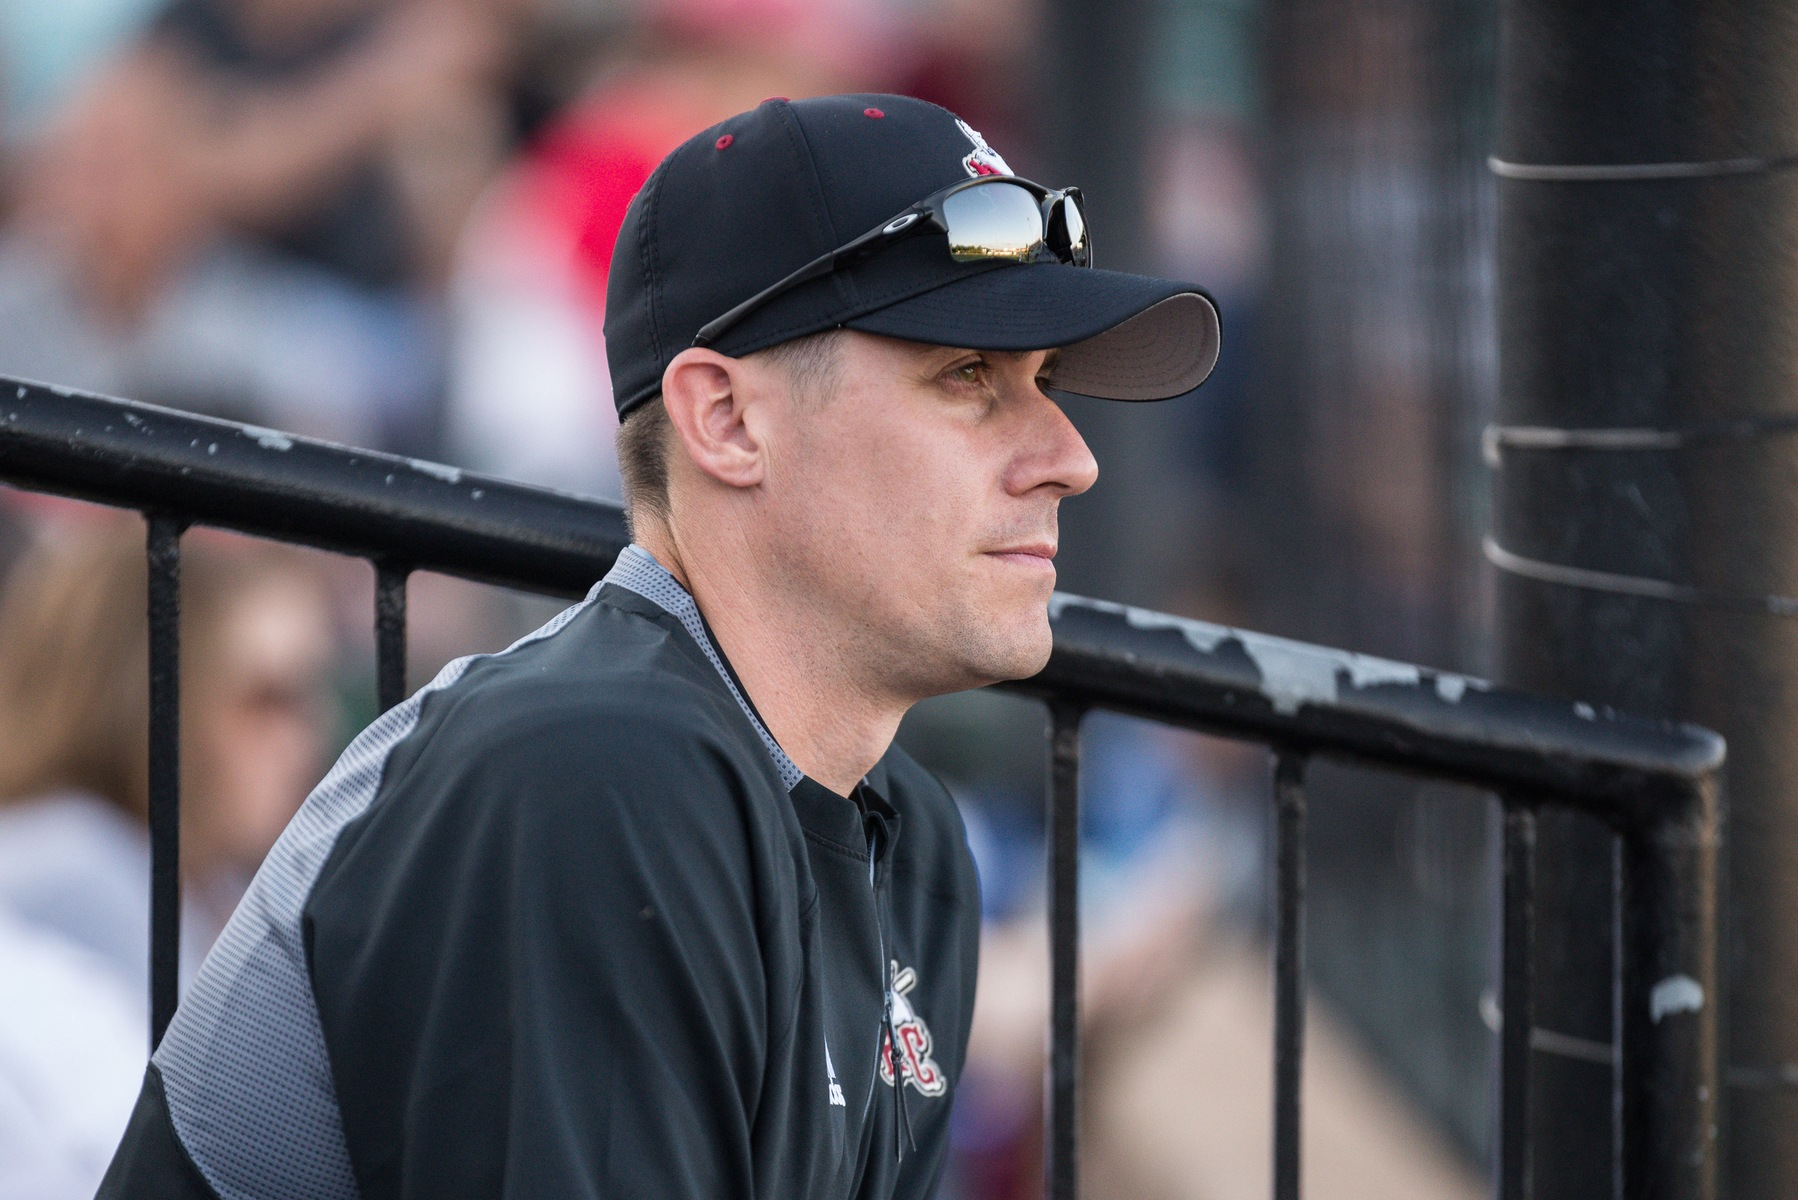 Rascals Announce Coaching Staff